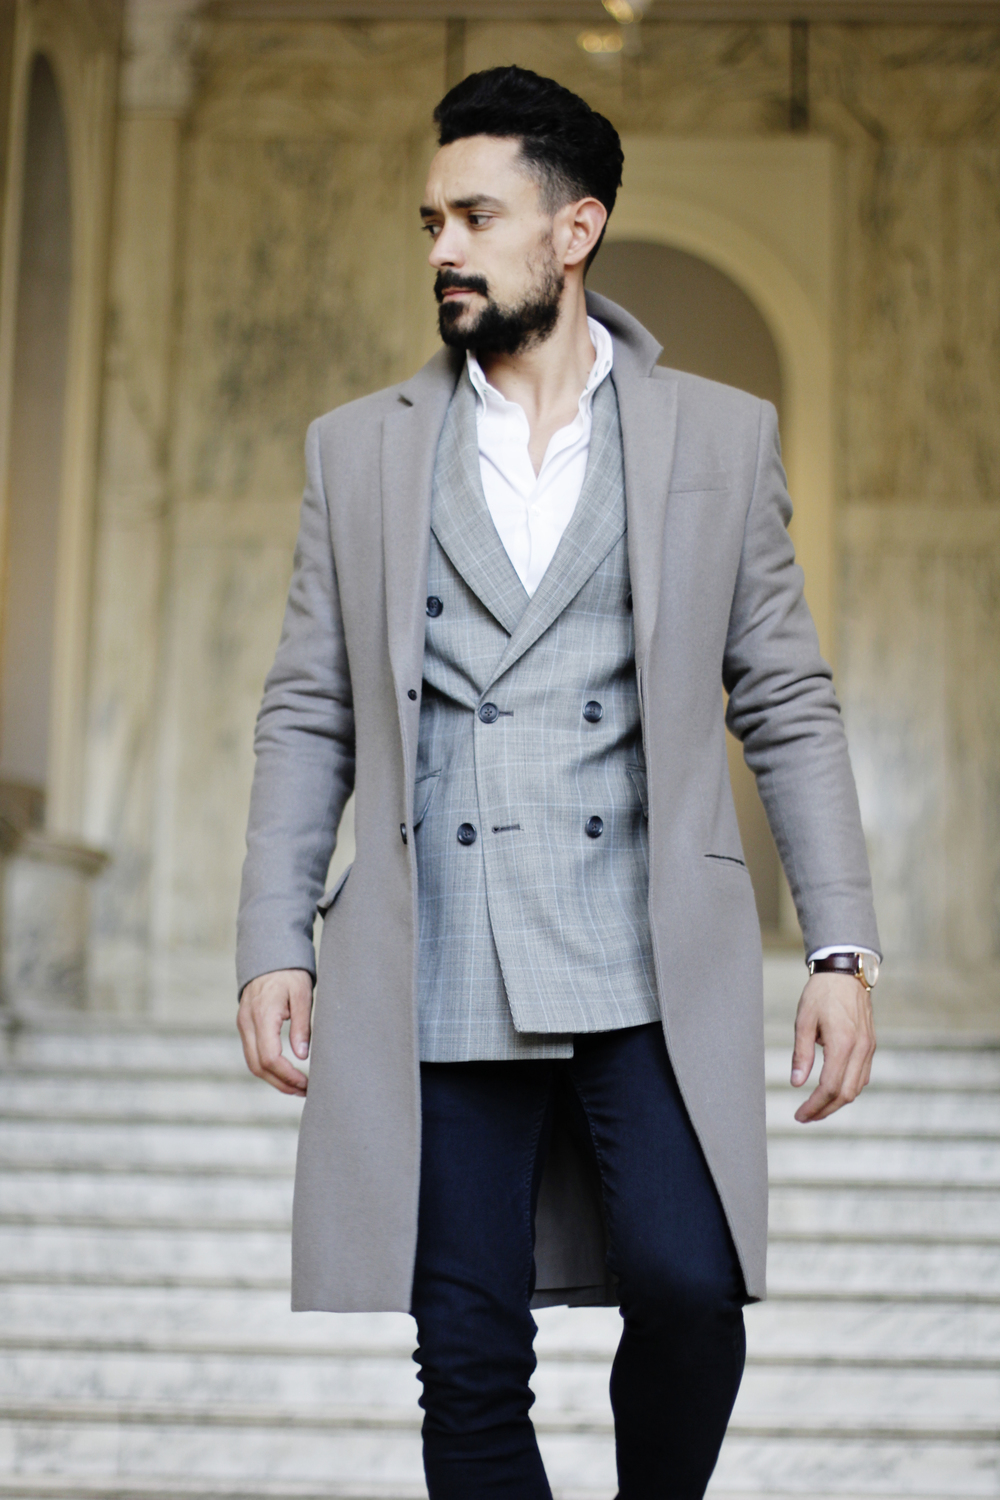 a036c91d6060 ONE JACKET STYLED TWO WAYS - SMART FORMAL — MEN S STYLE BLOG